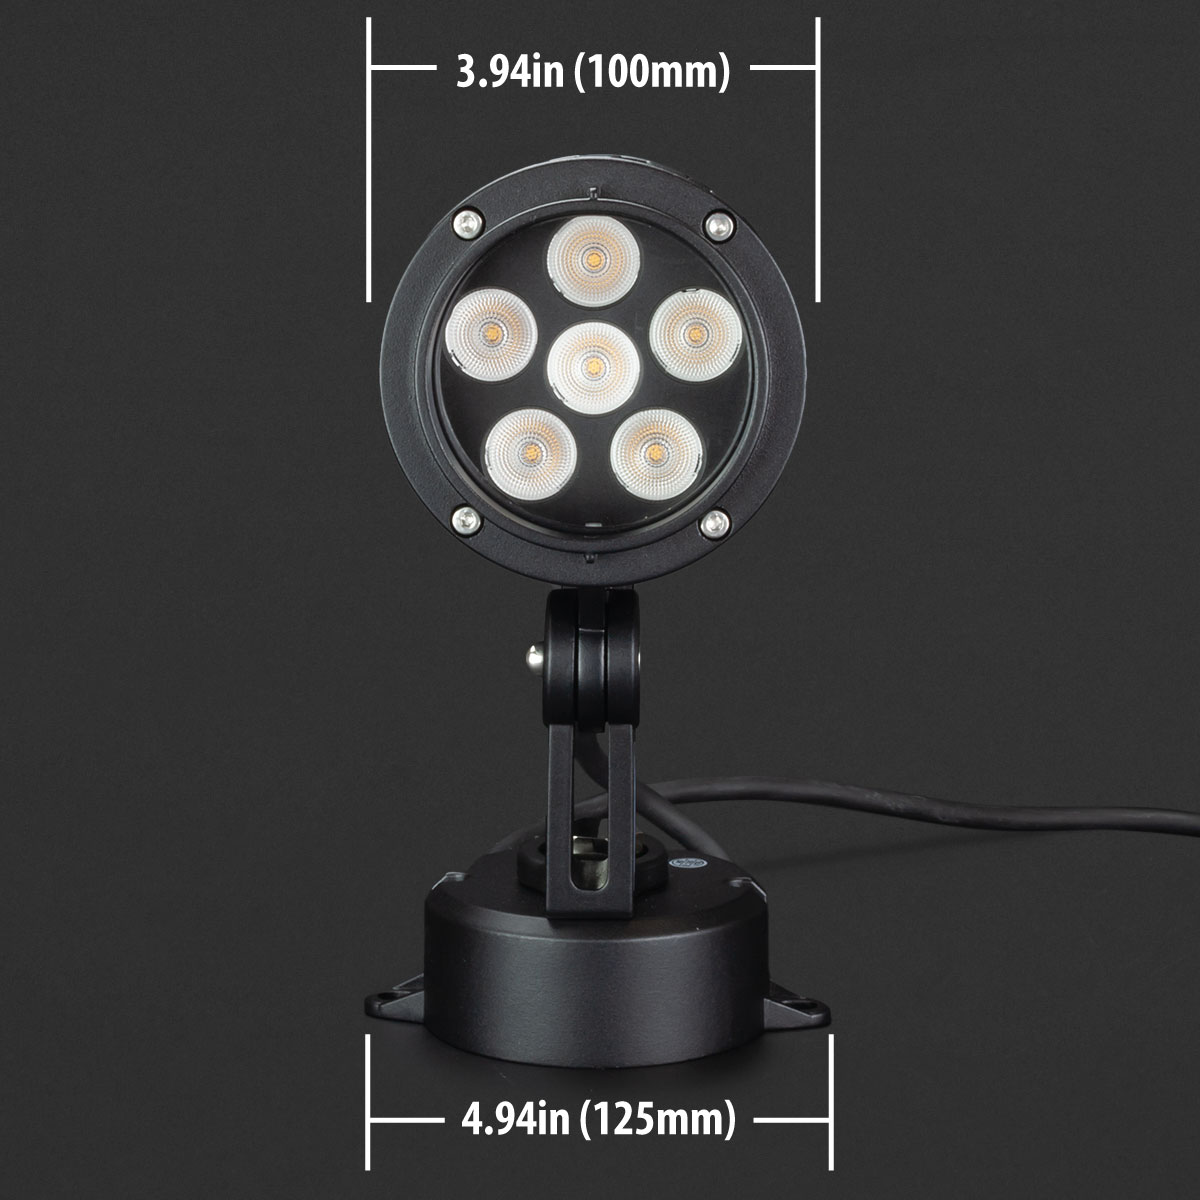 CricketPro RGB Dimmable LED Landscaping Light 10W - CricketPro RGB Dimmable LED Landscaping Light